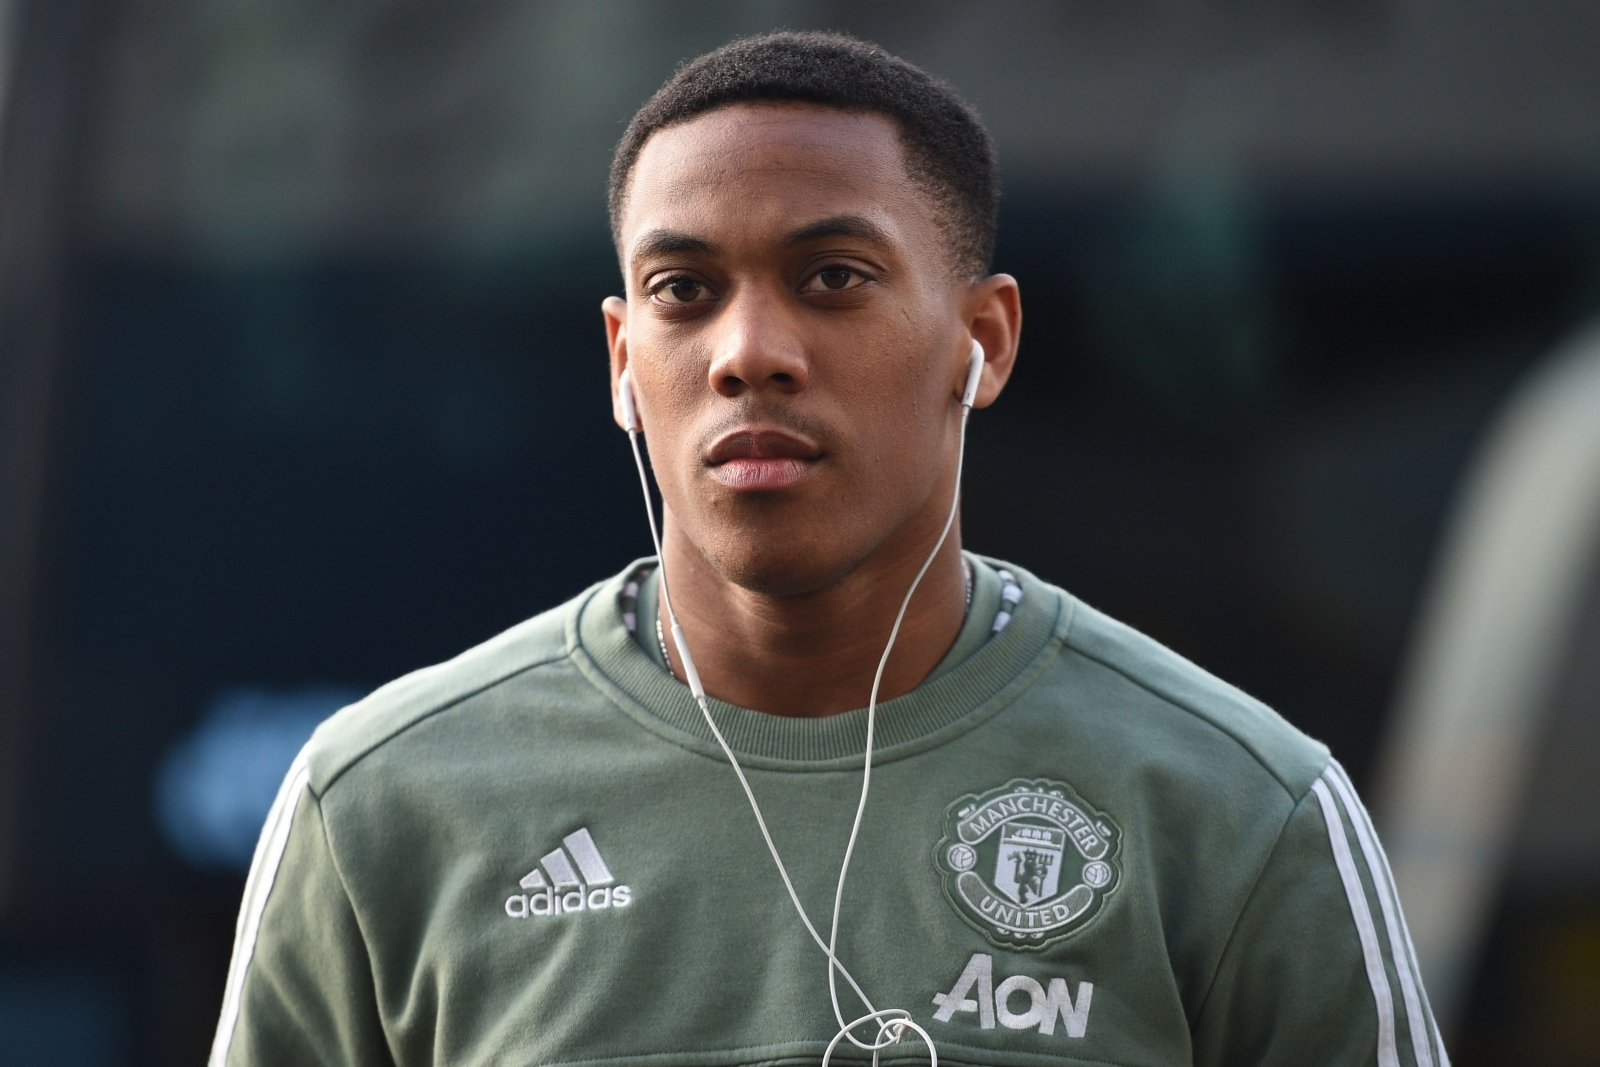 Martial's Manchester United future in doubt as contract talks stall Tottenham and Inter Milan interested